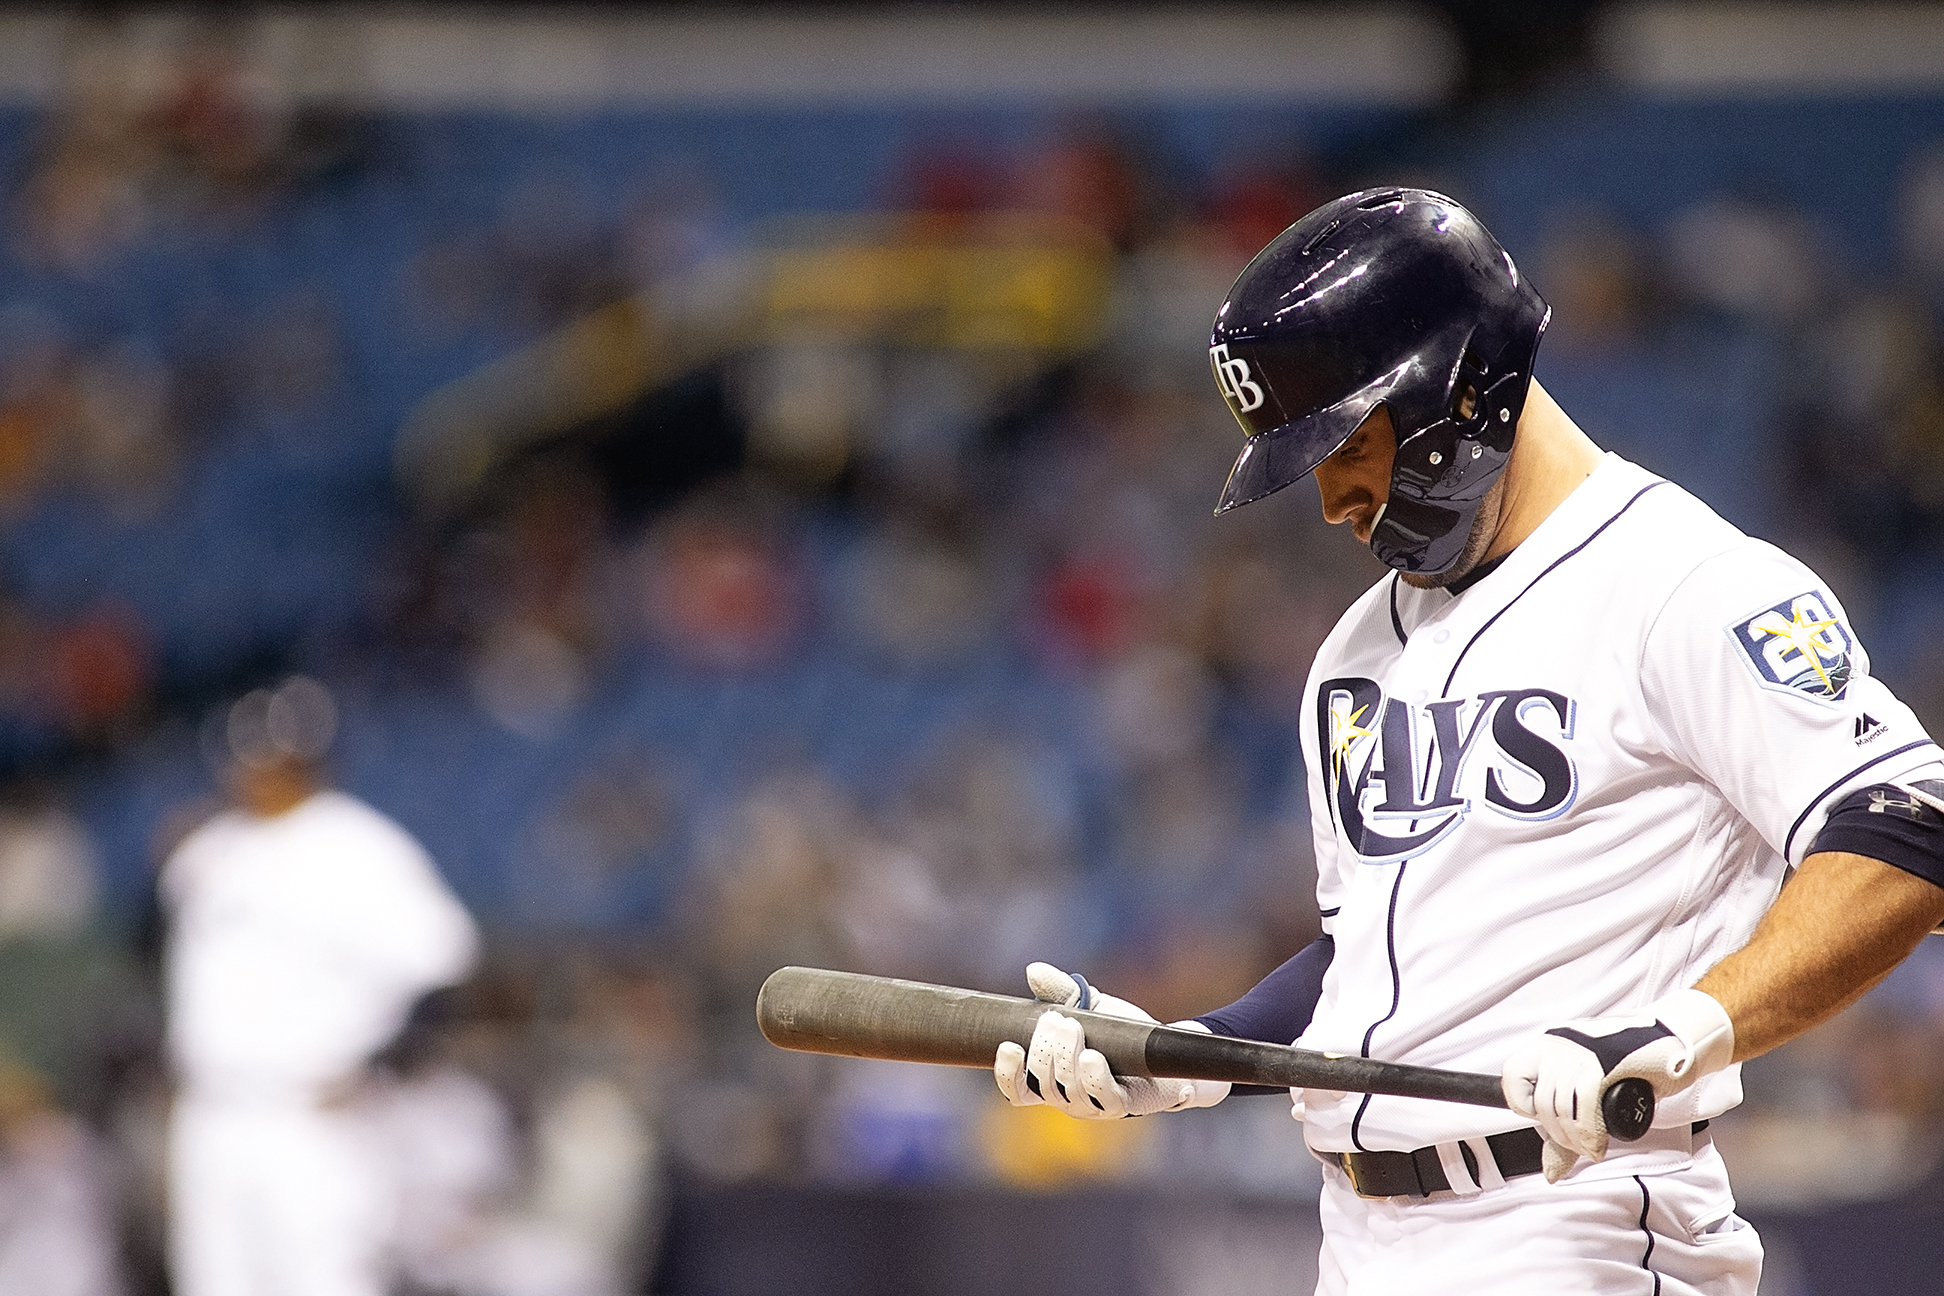 Field had two hits for the Rays./CARMEN MANDATO